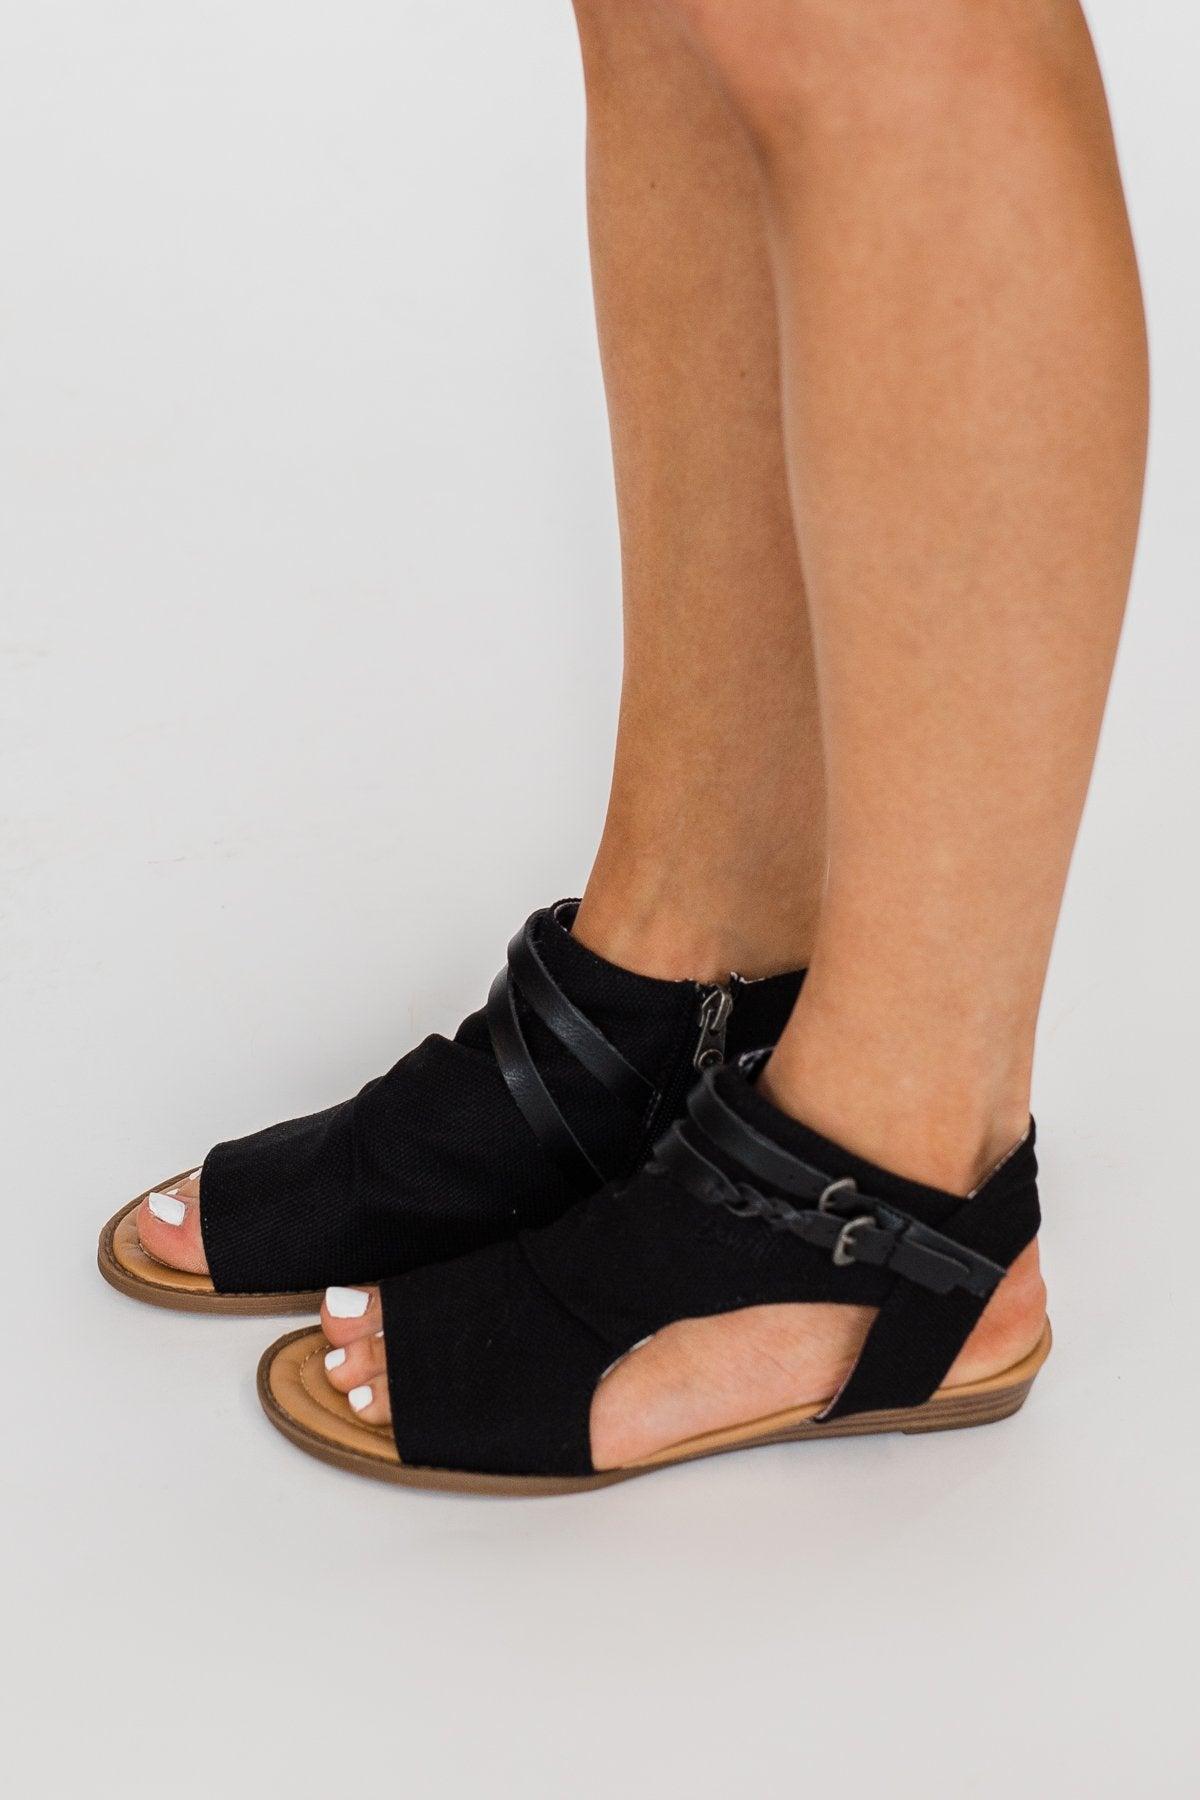 Blowfish Blumoon Sandals- Black